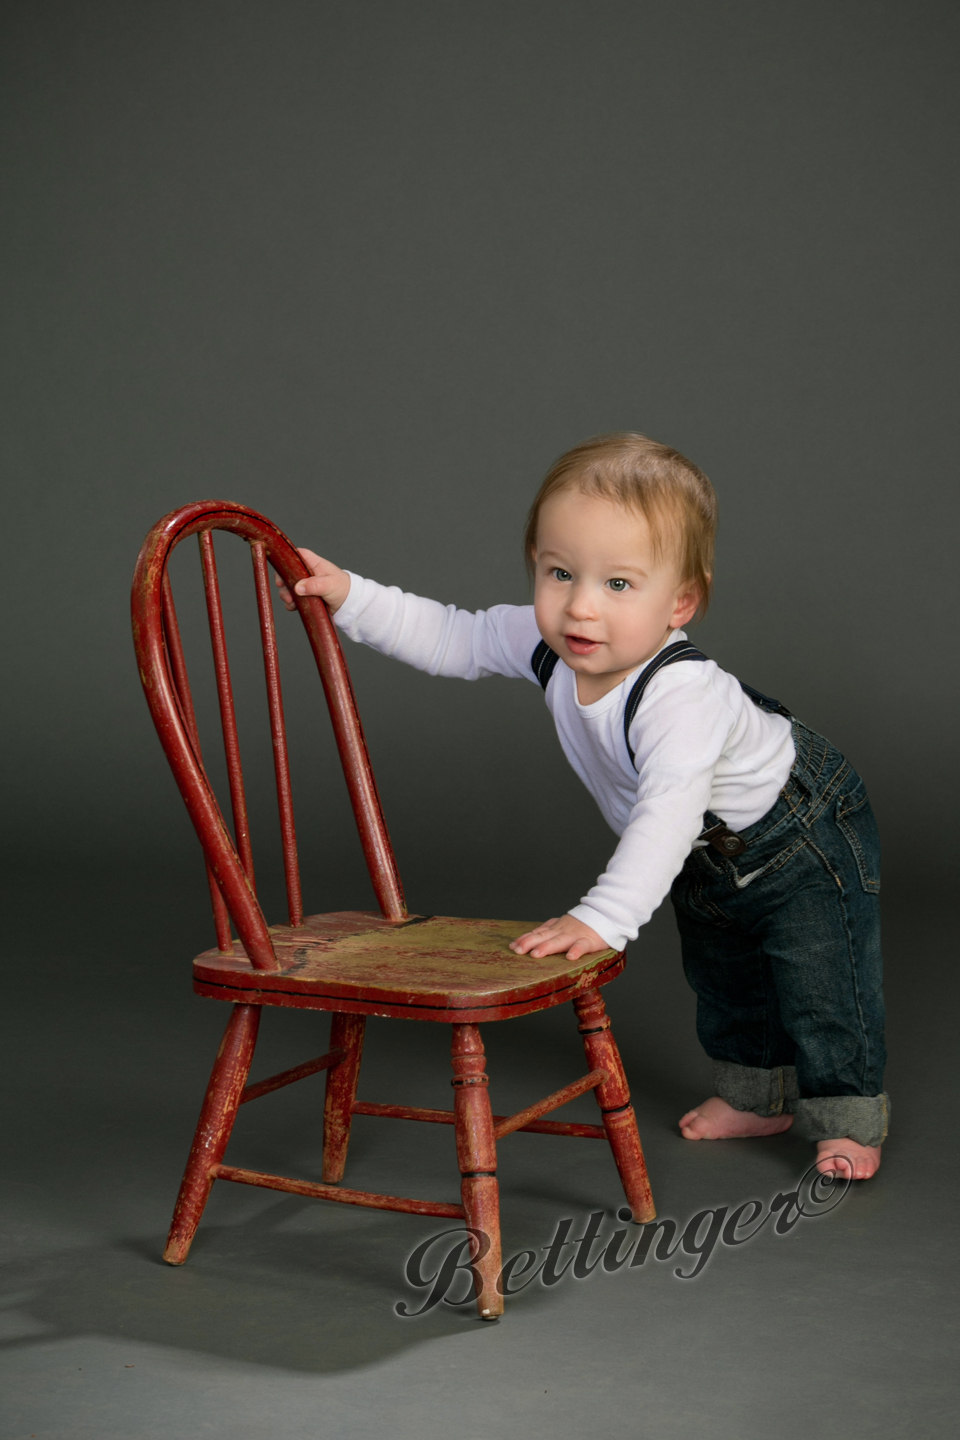 - He loved pushing the chair across the studio.